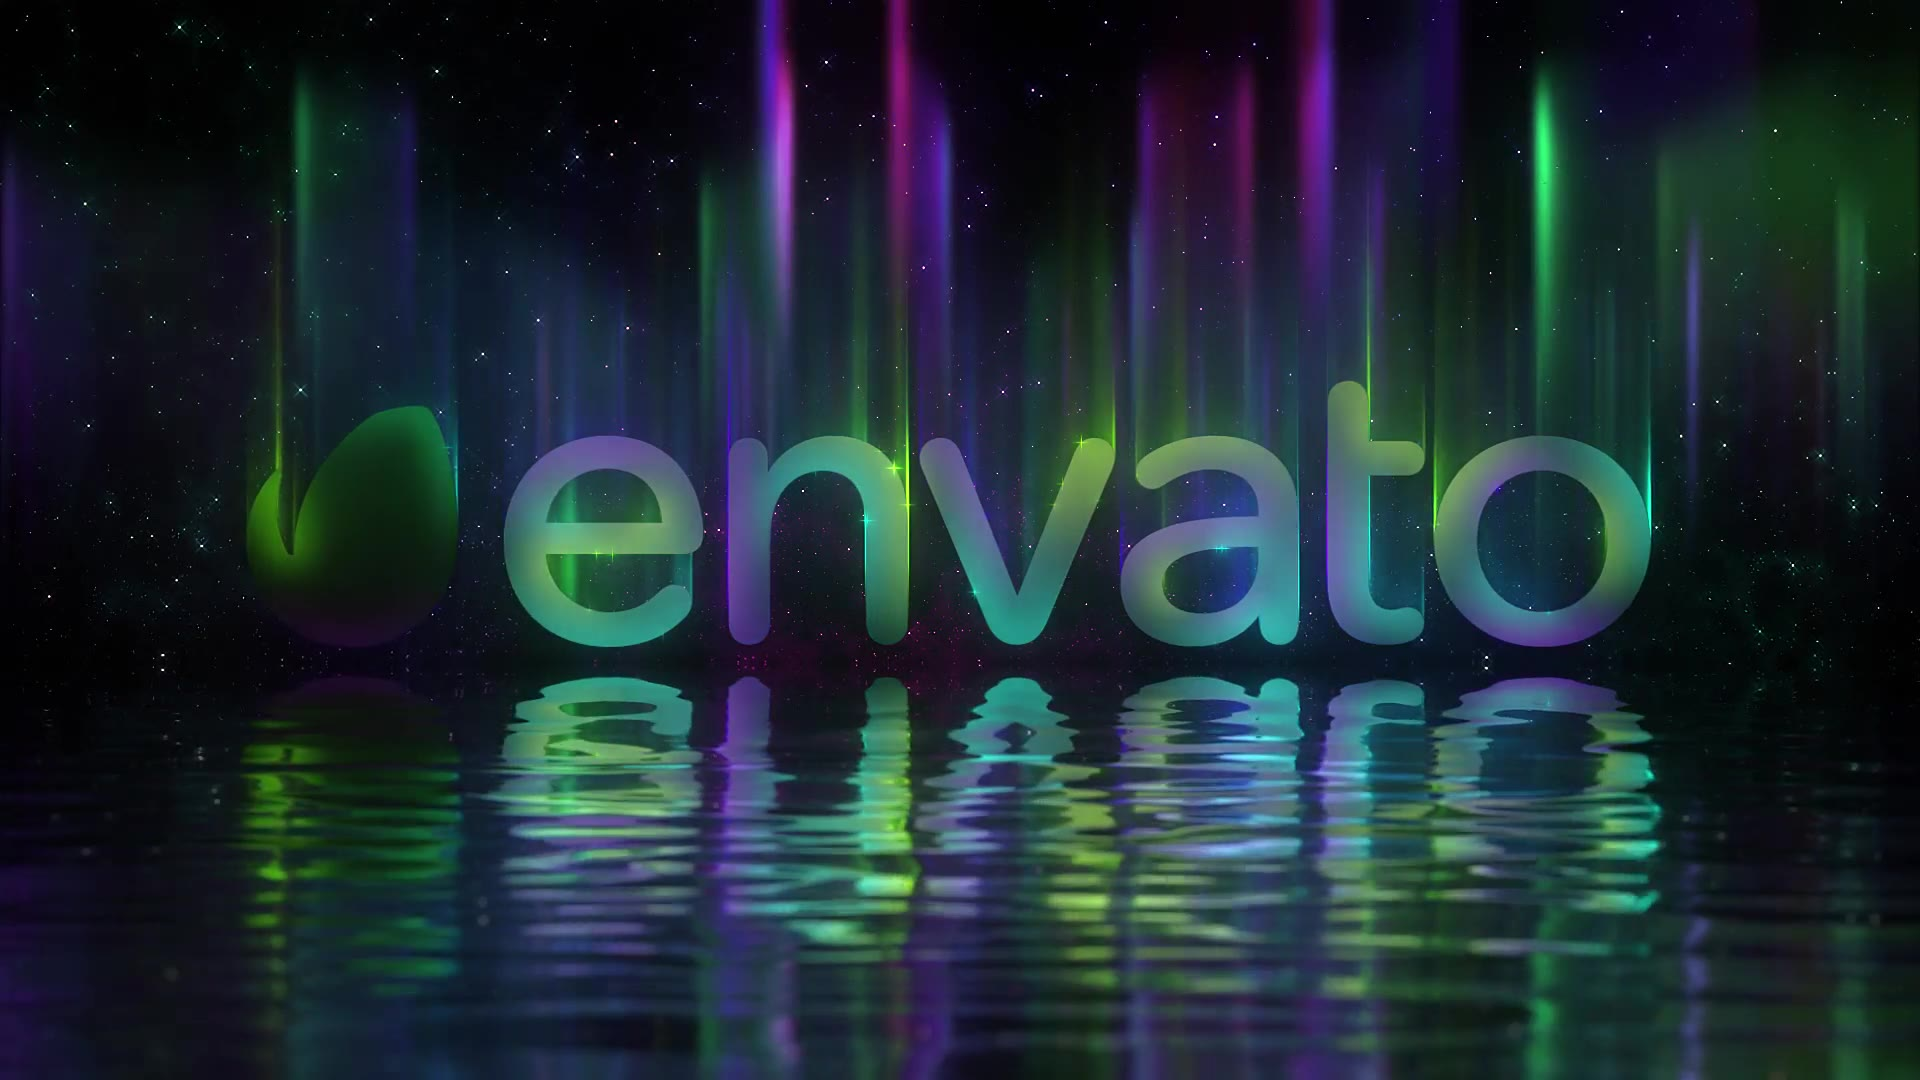 Northern Lights Logo Videohive 25503770 After Effects Image 2